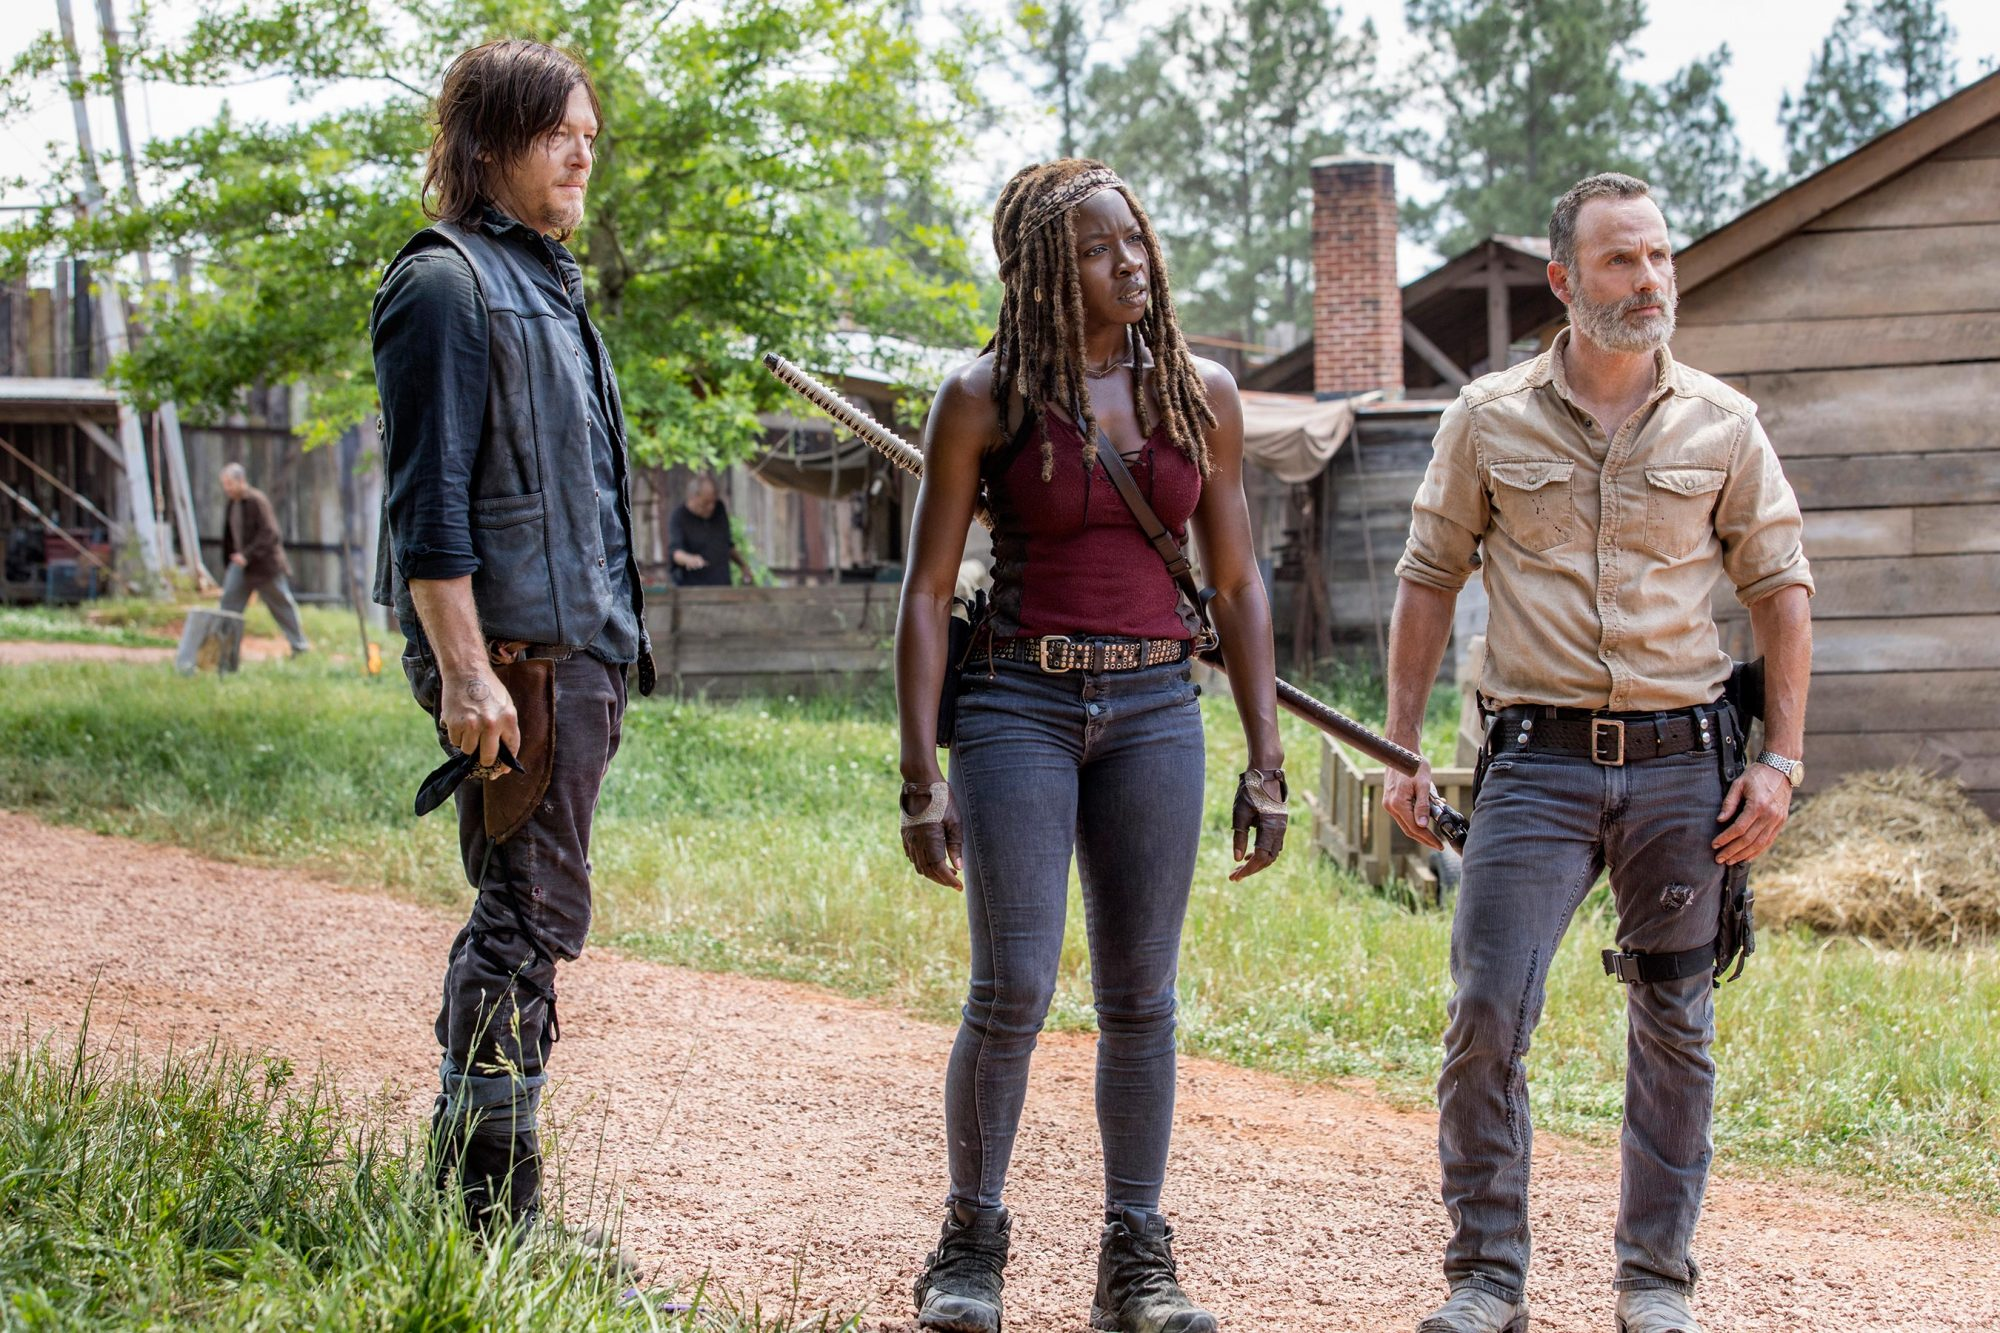 TWD_901_JLD_0509_5239_RT